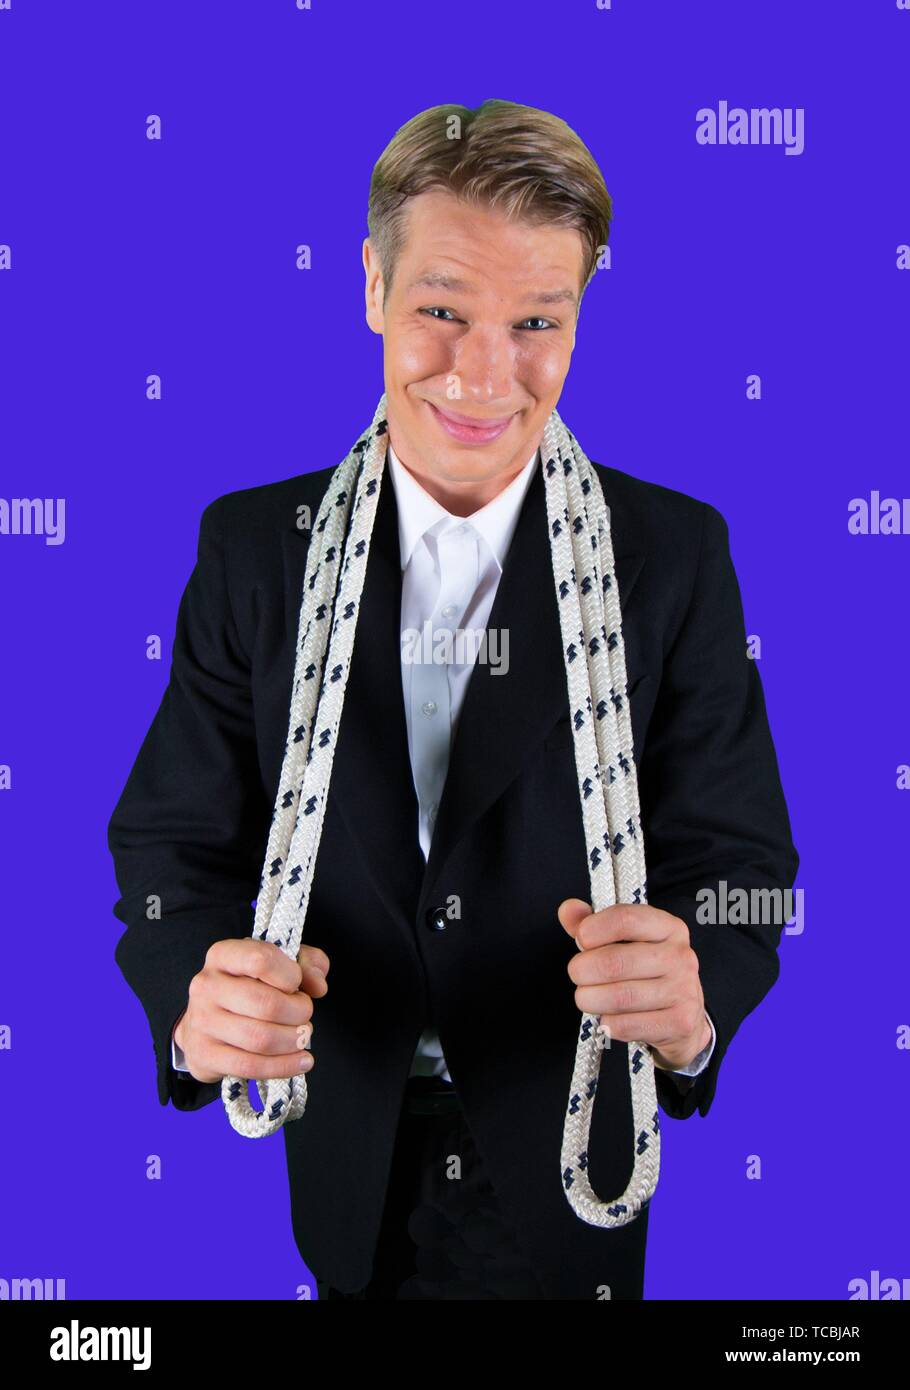 Elegant and happy juggler with juggling rope. - Stock Image